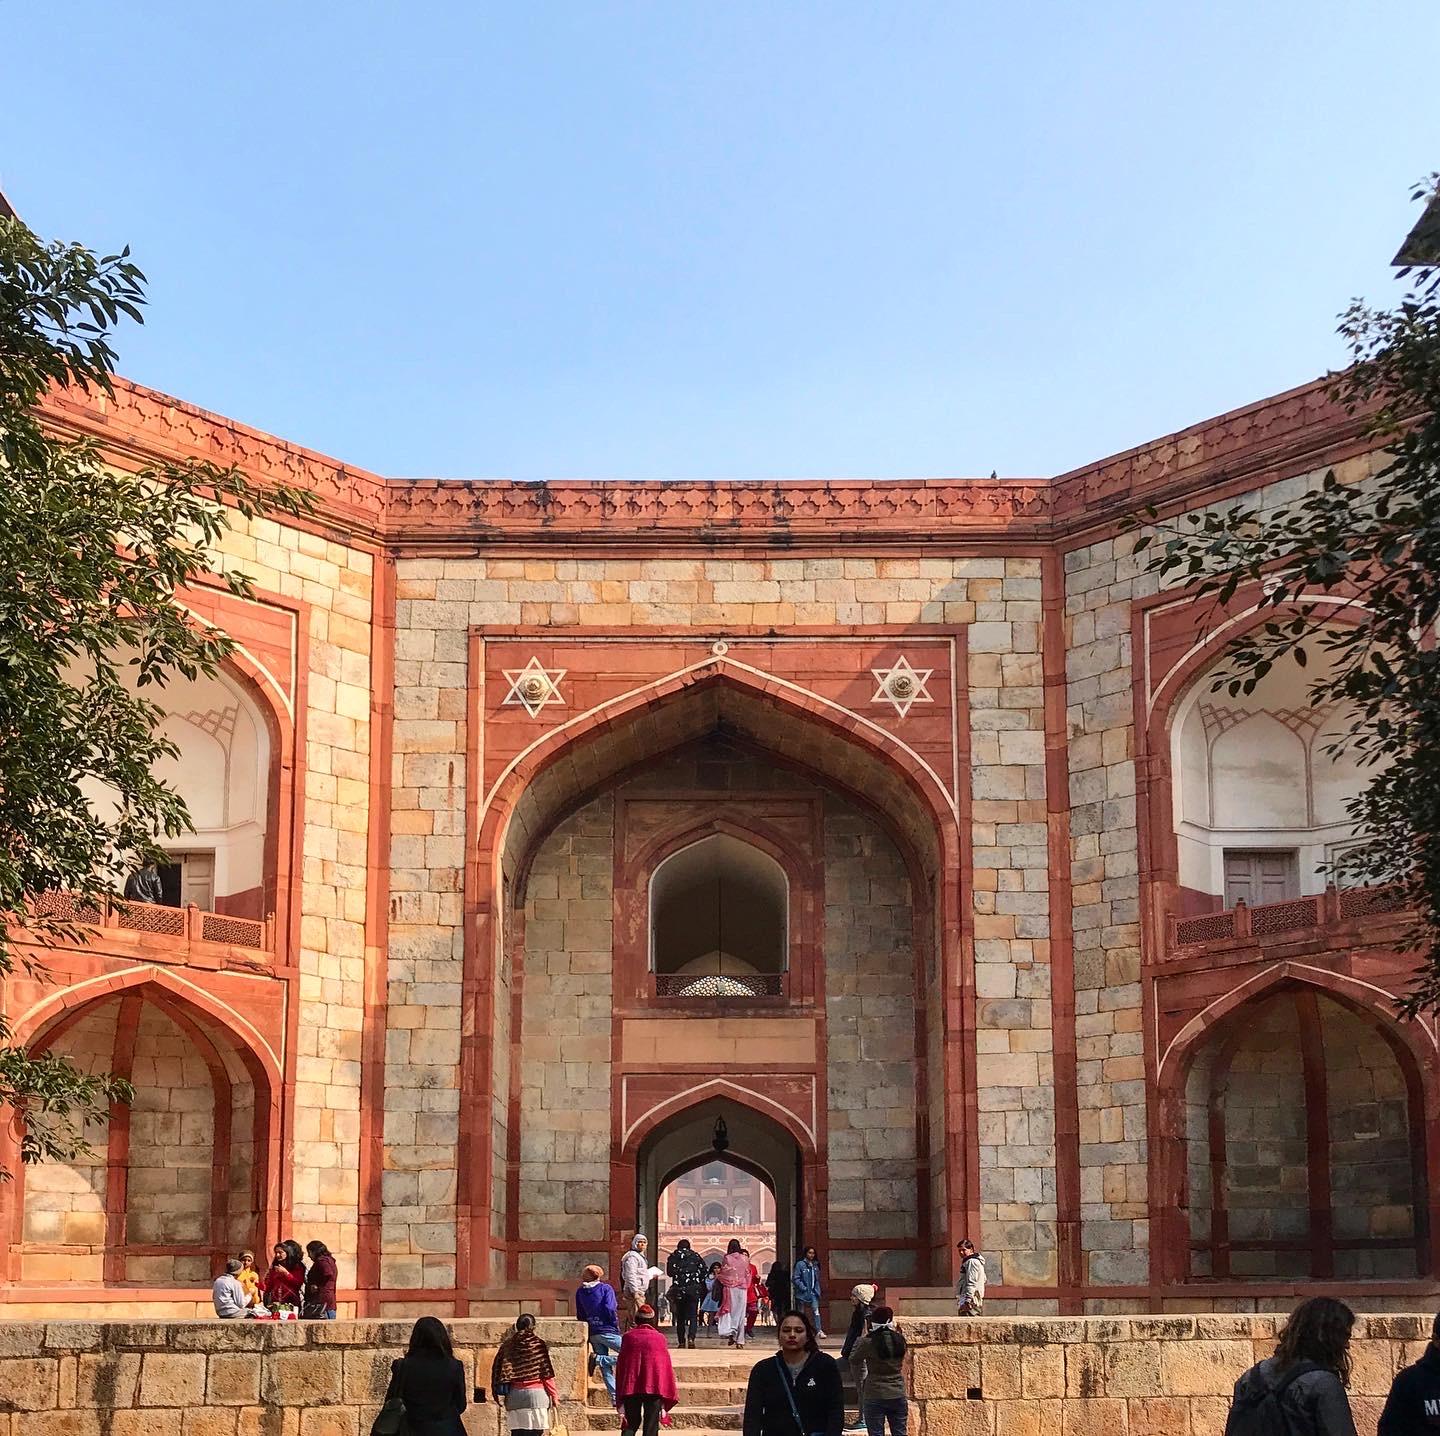 The main gate of the Humayun's tomb in Delhi, India